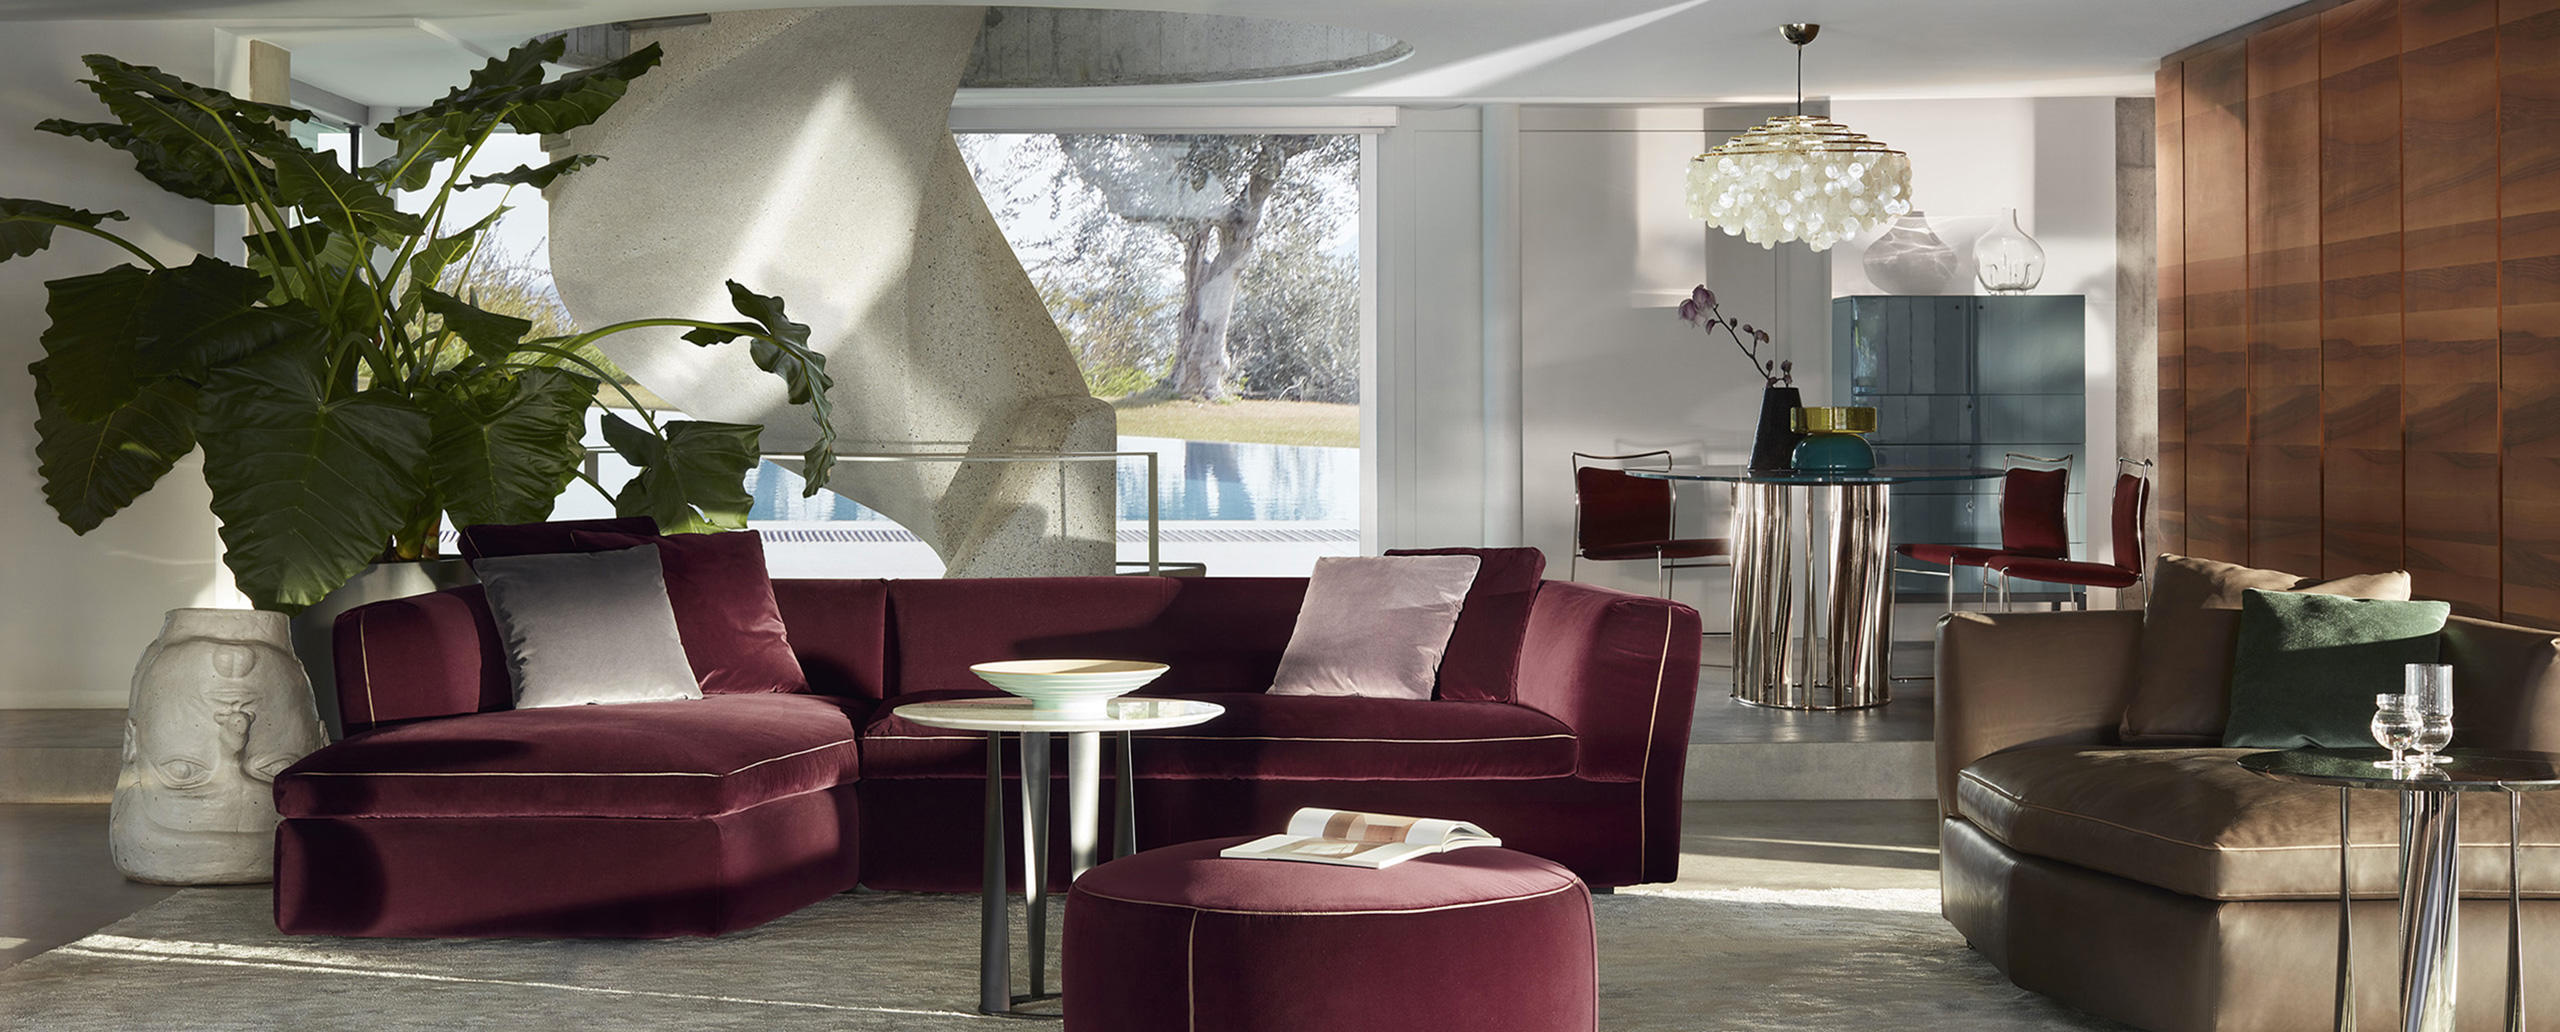 9_cassina_dress-up_sofa_system_rodolfo_dordoni_photodepasqualemaffini_0